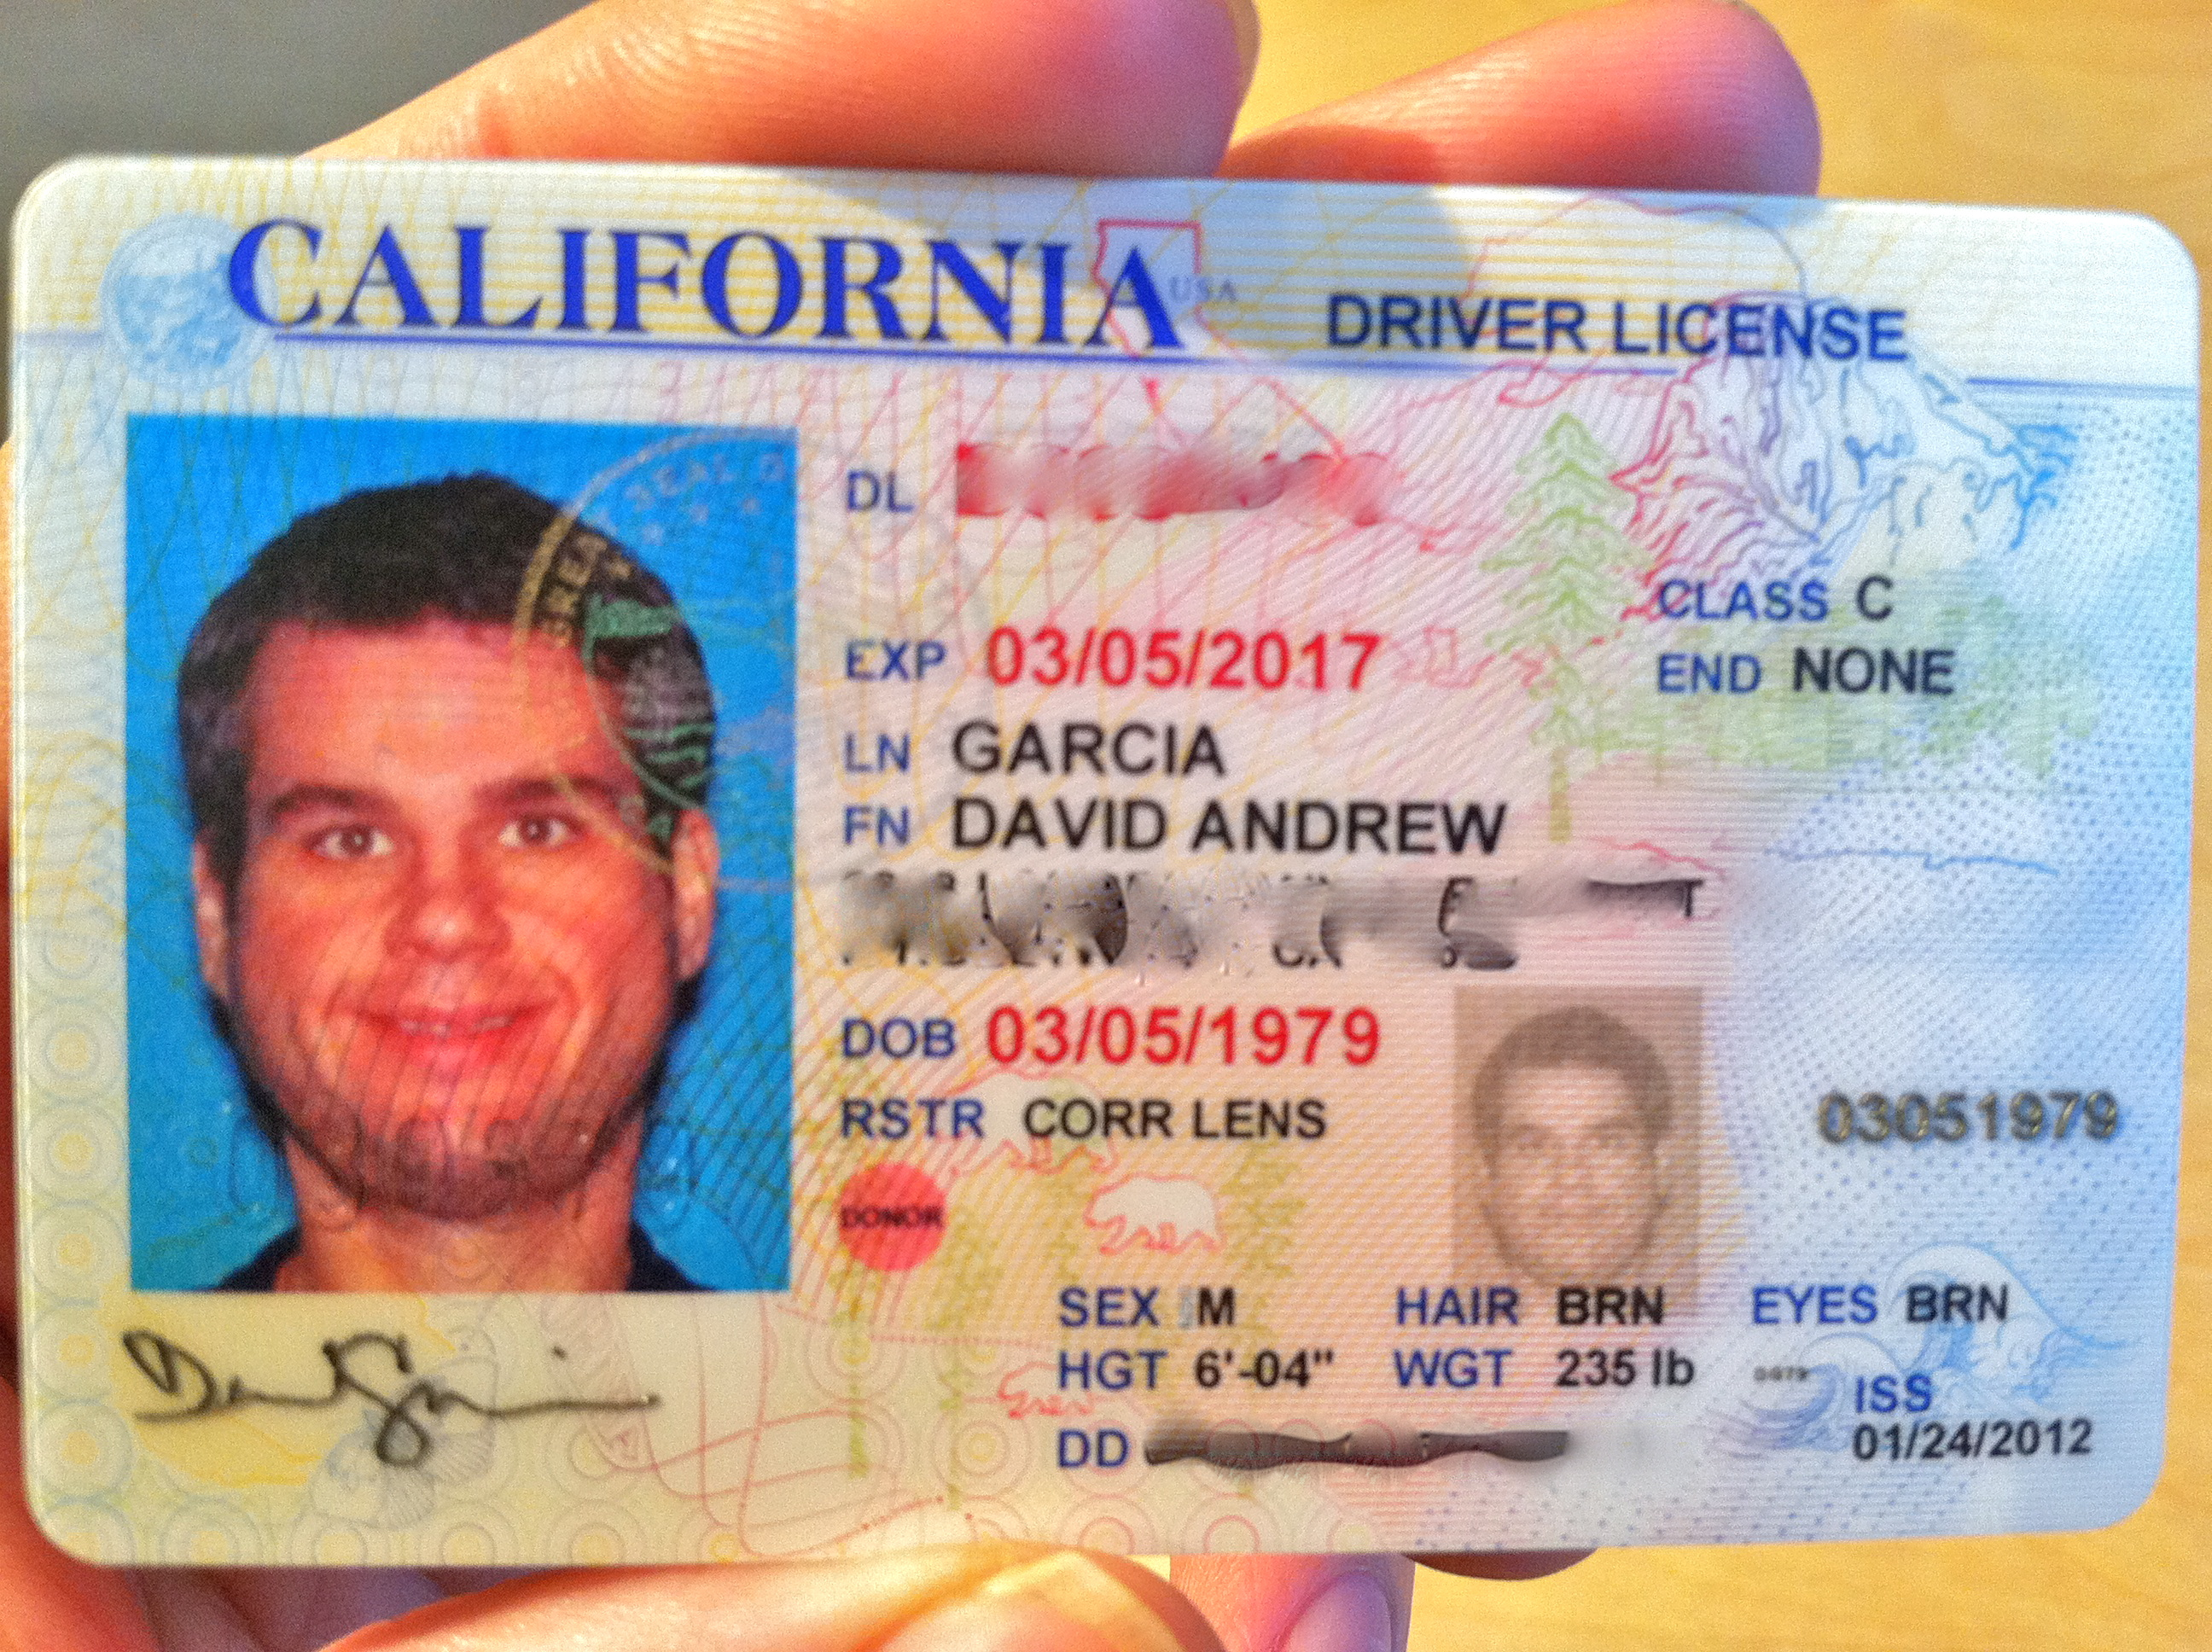 Yes! My New Driver License Photo! | Keep It Up, David!